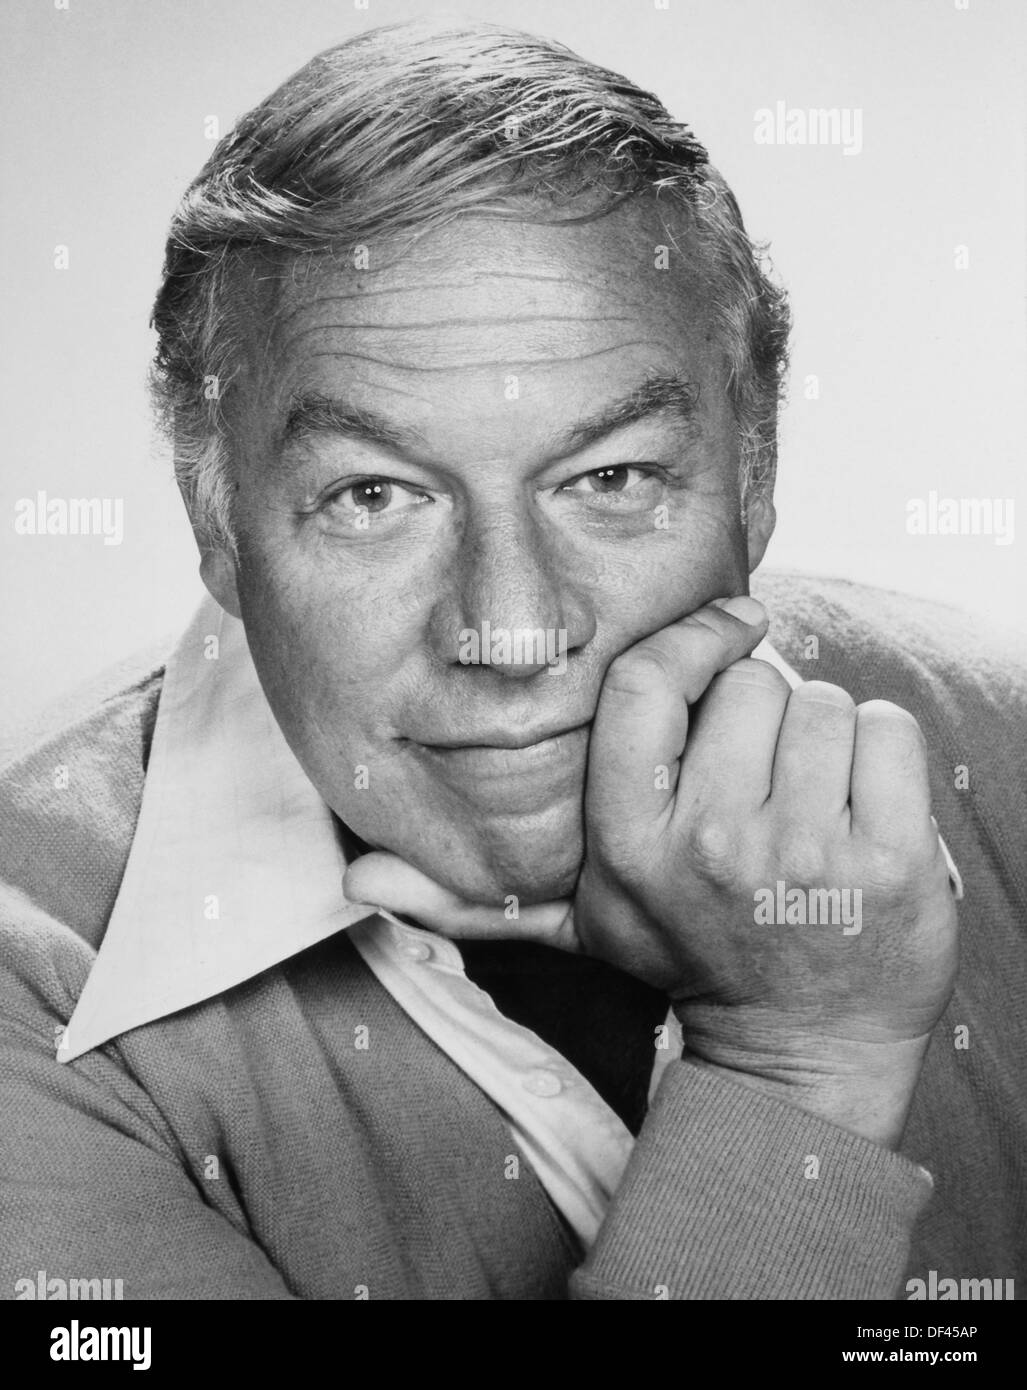 George Kennedy, Studio Portrait, Circa 1970 - Stock Image